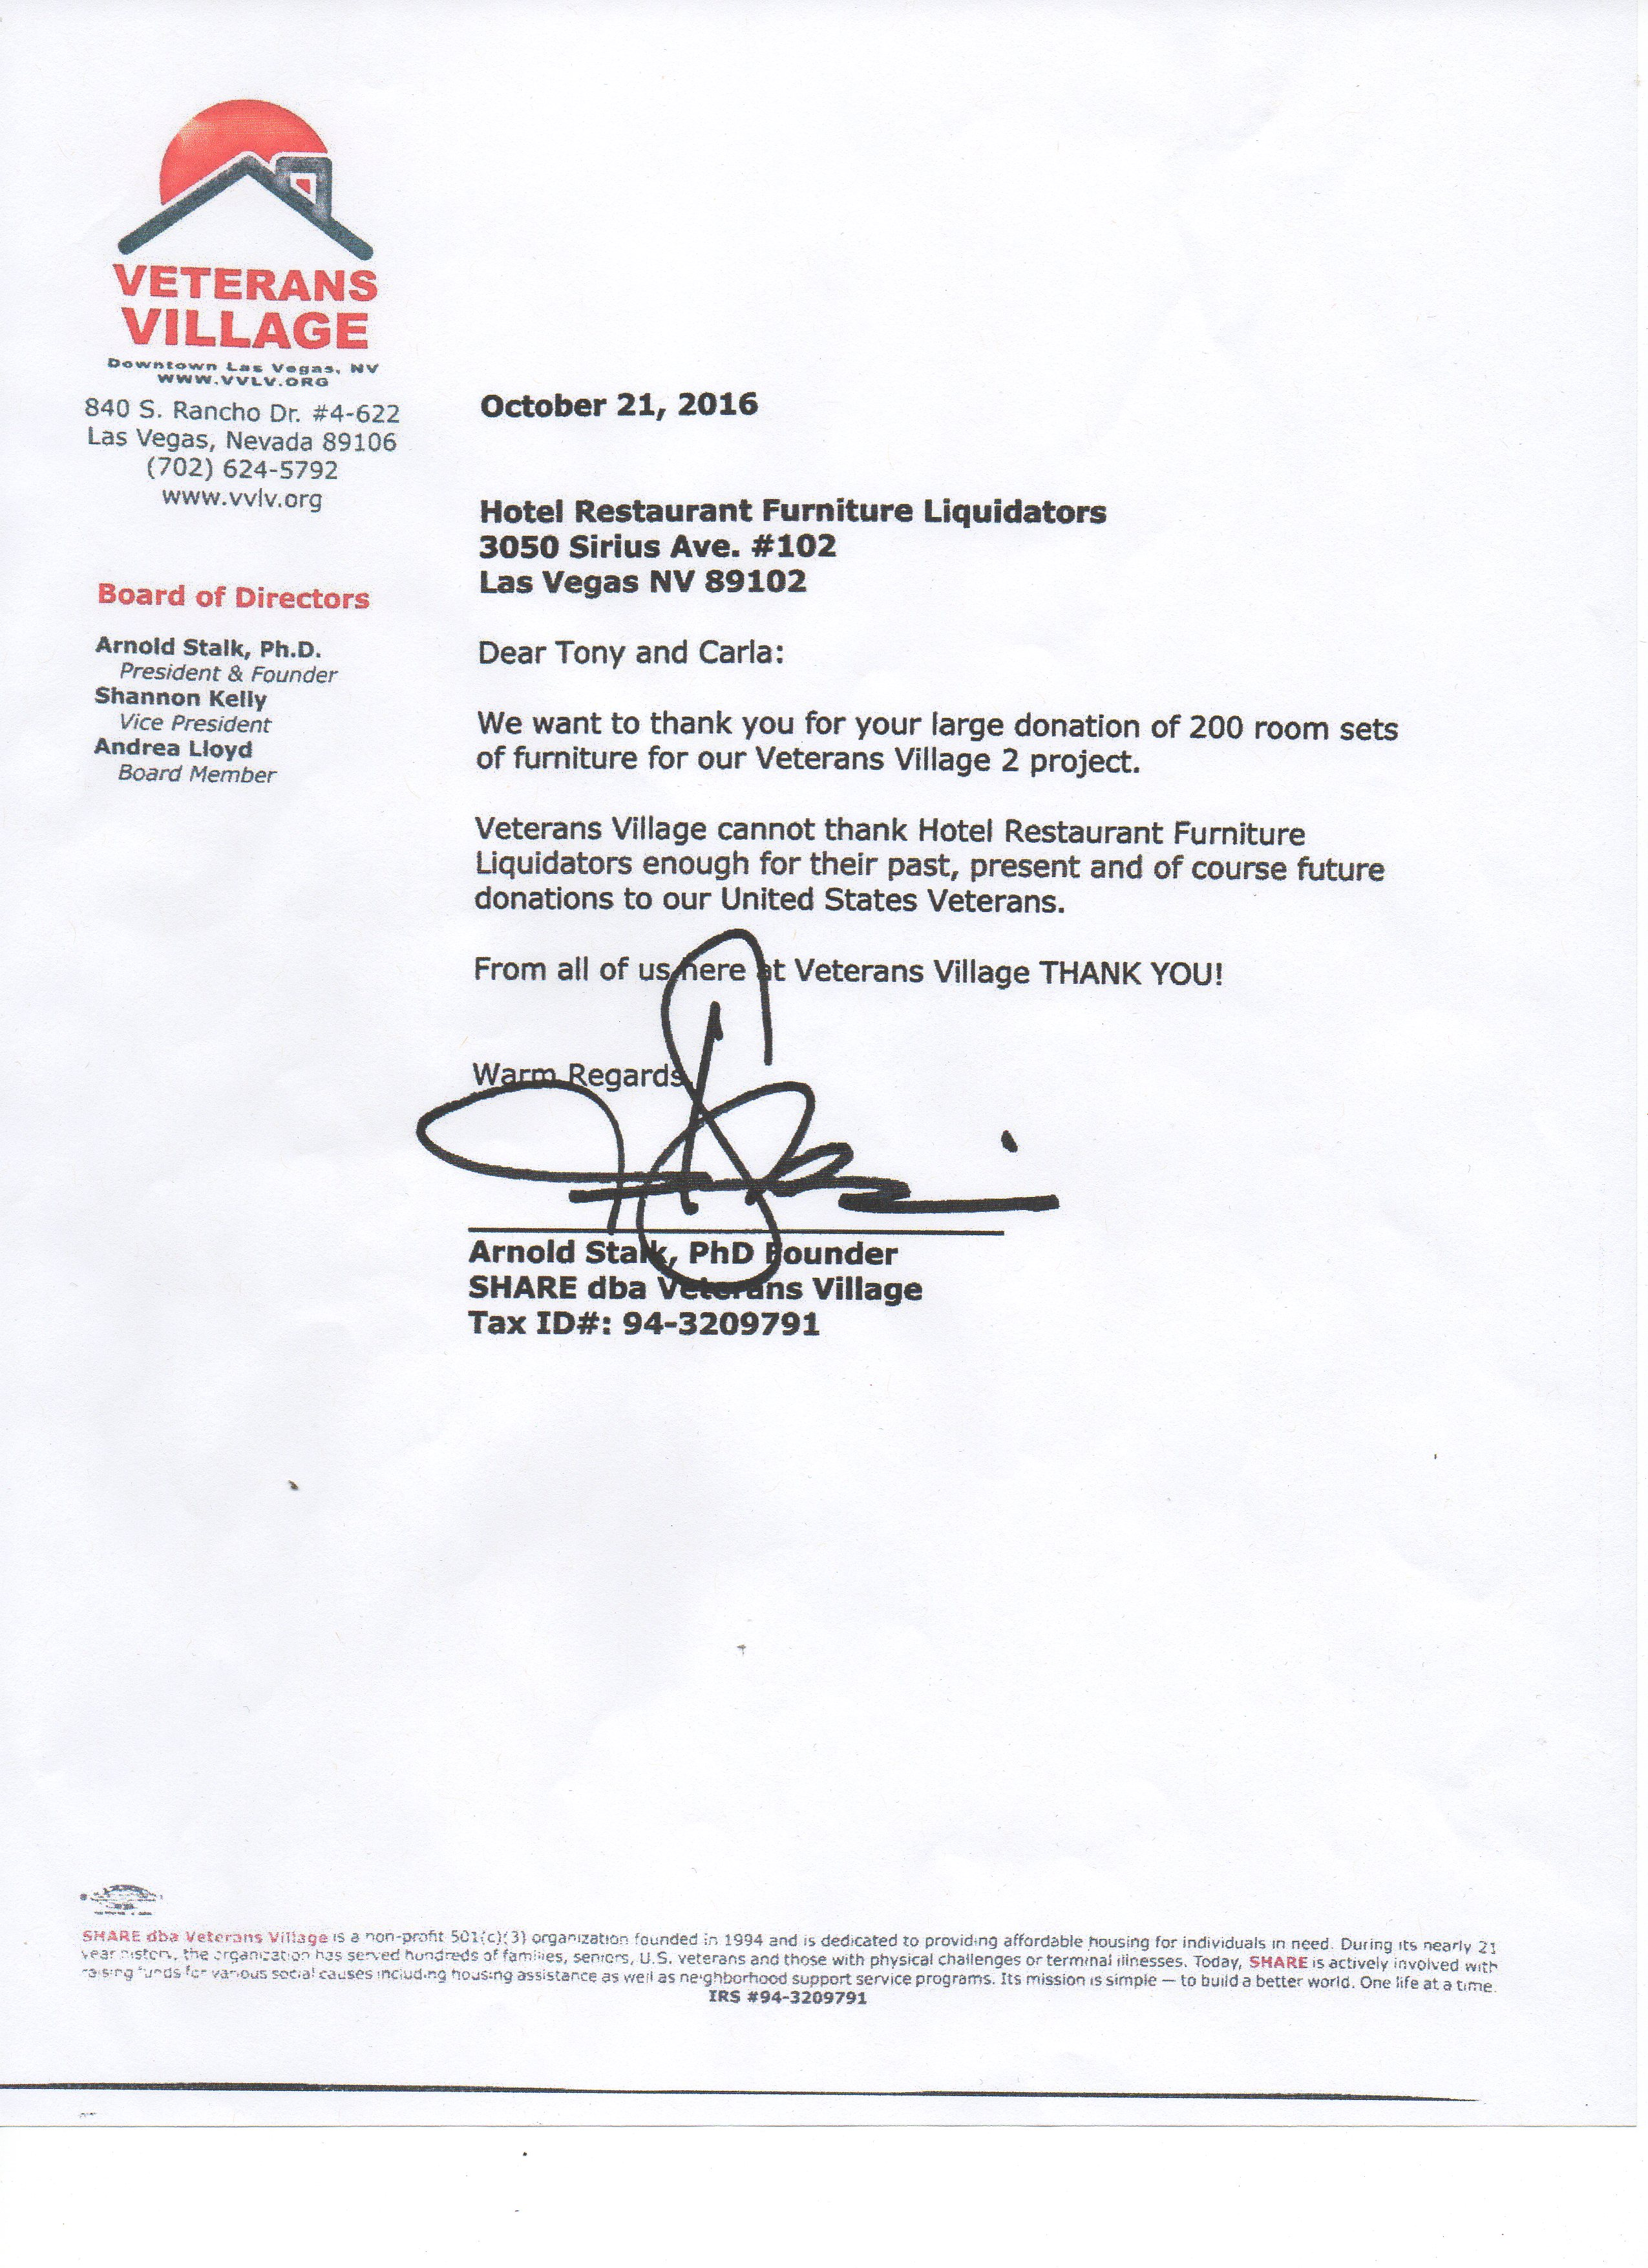 Hrfl Has Donated Over 300 Rooms Of Furniture To Date Veterans Village Image Read The Donation Letter